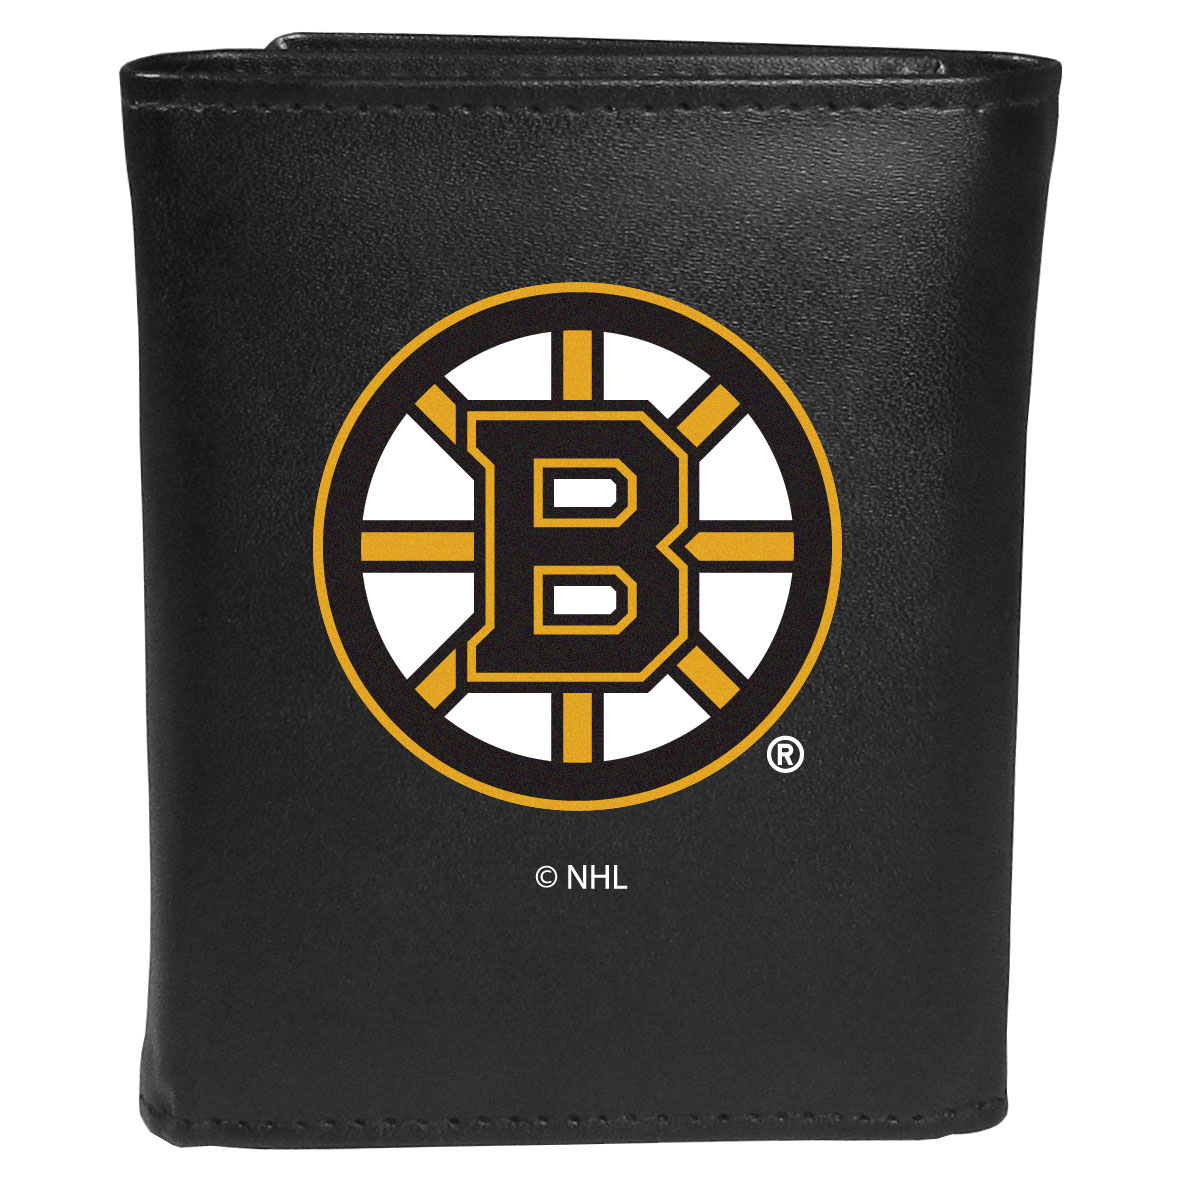 Boston Bruins® Leather Tri-fold Wallet, Large Logo - Our classic fine leather tri-fold wallet is meticulously crafted with genuine leather that will age beautifully so you will have a quality wallet for years to come. This is fan apparel at its finest. The wallet is packed with organizational  features; lots of credit card slots, large billfold pocket, and a window ID slot. The front of the wallet features an extra large Boston Bruins® printed logo.